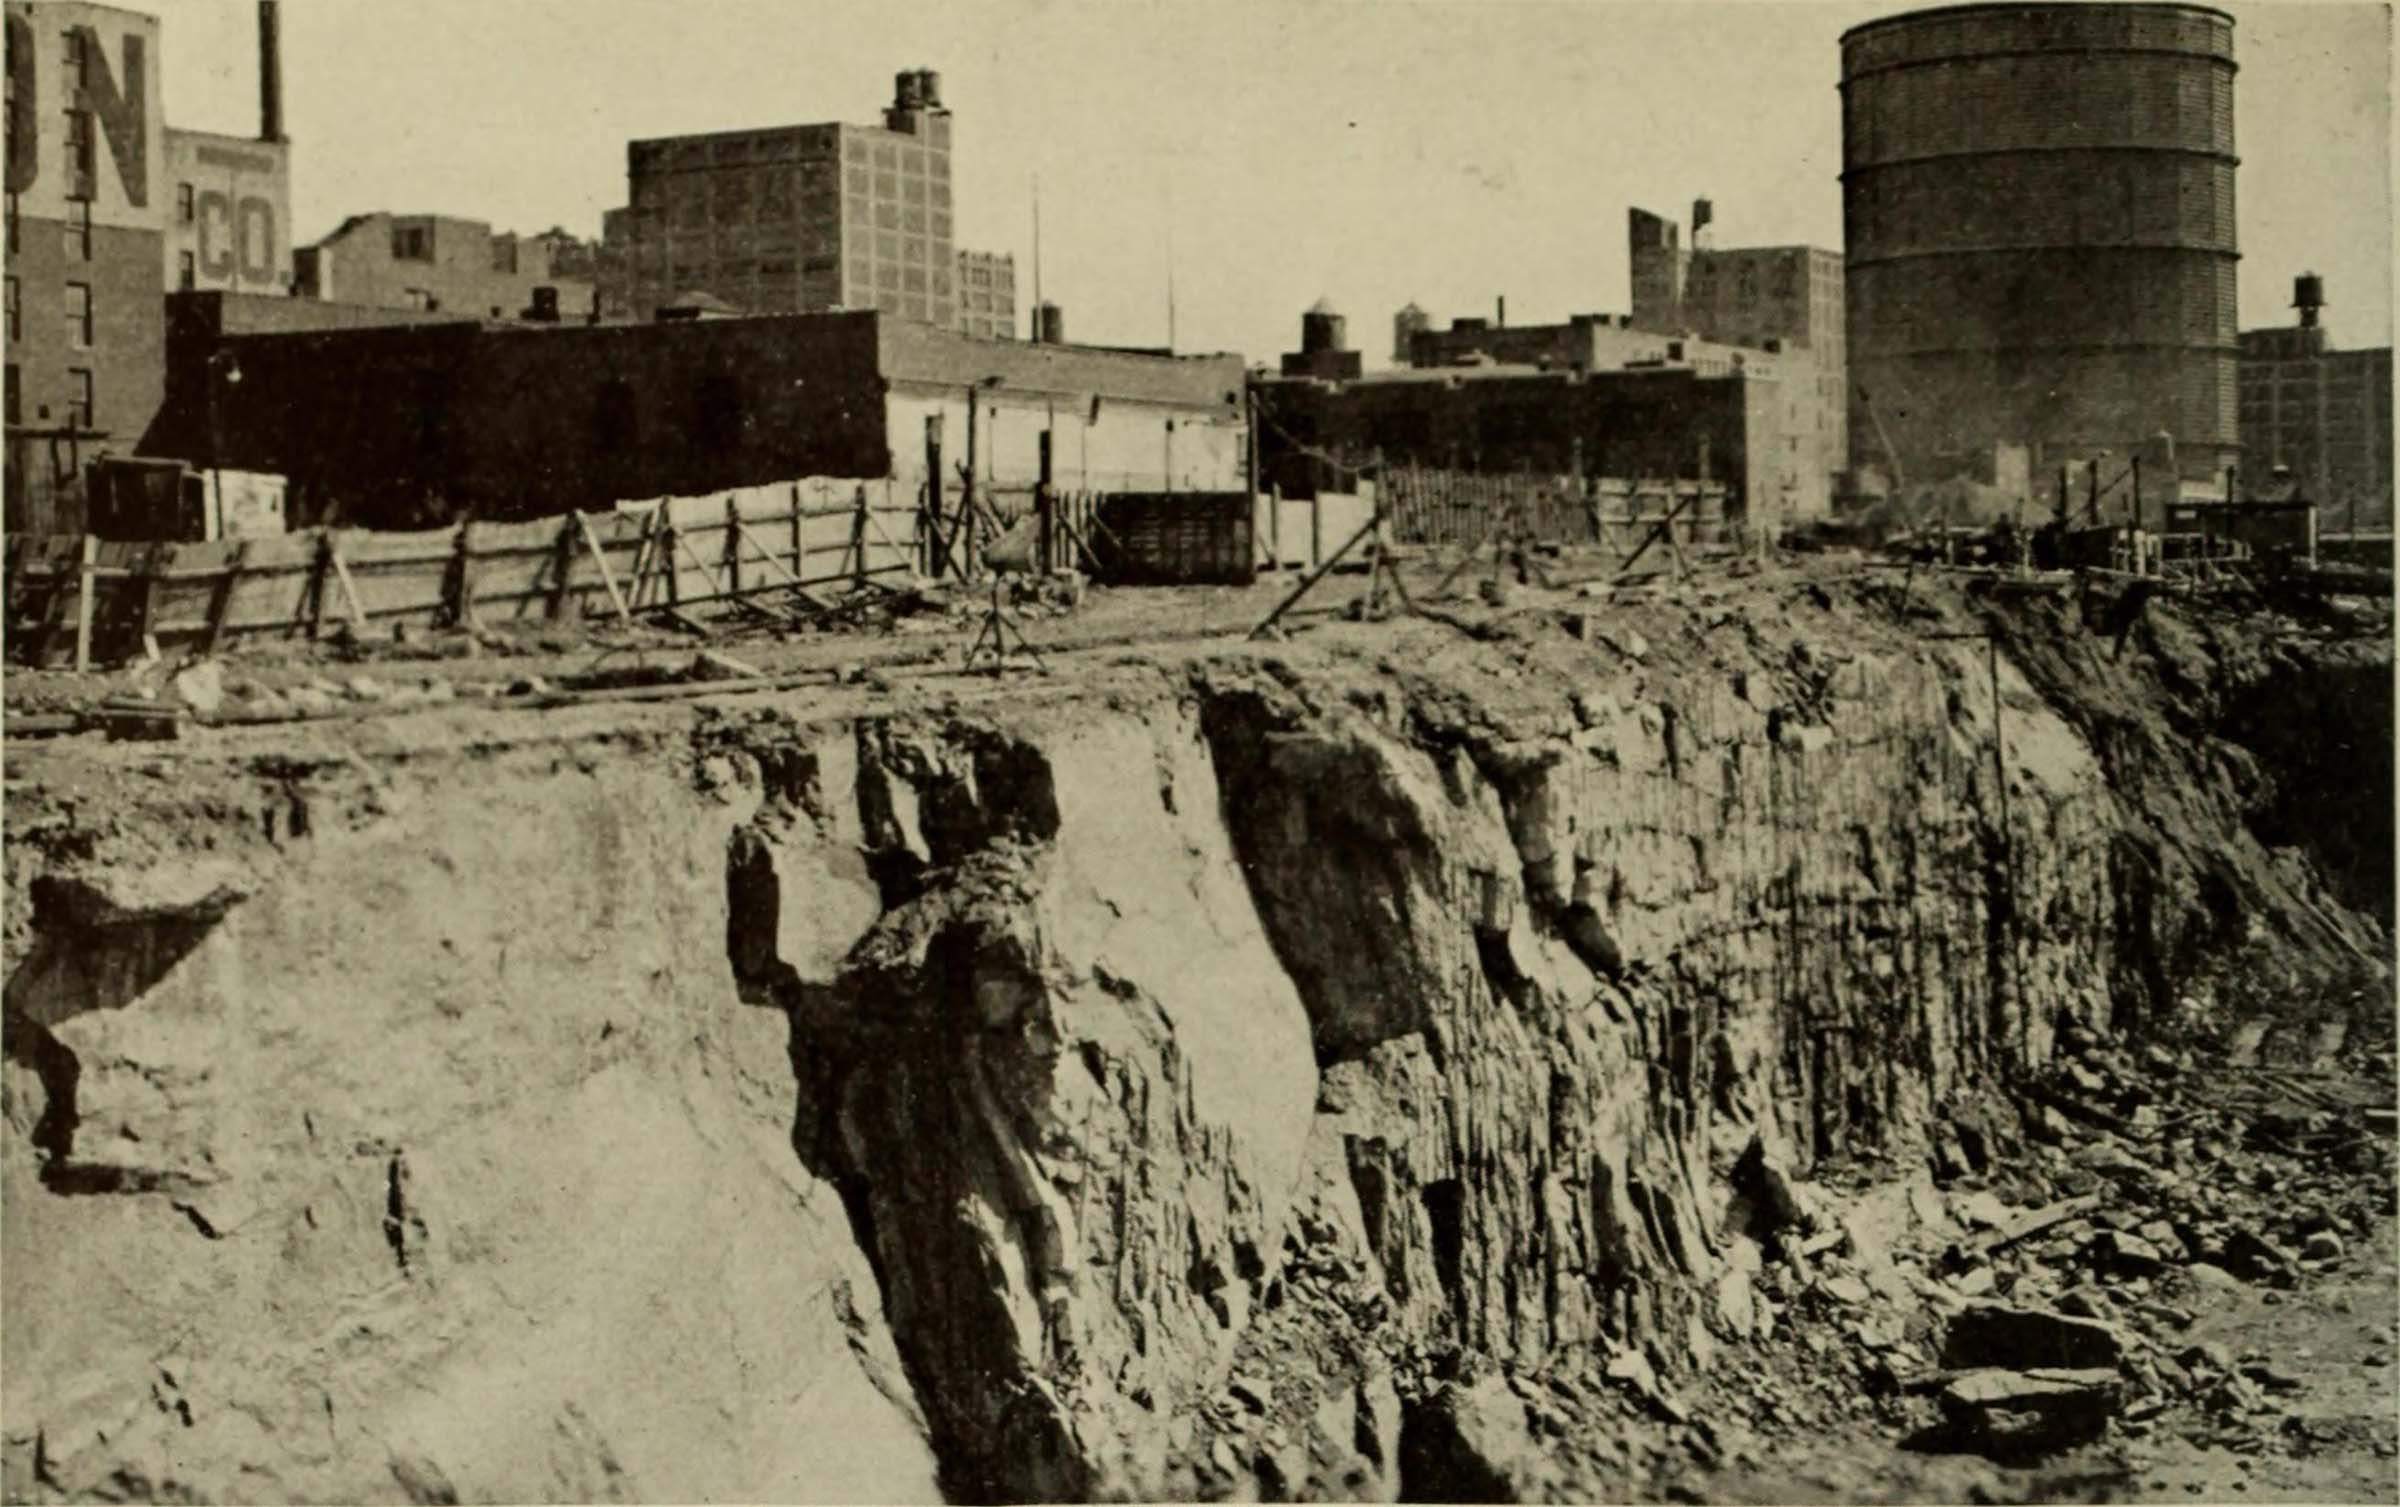 Historic image of the clay and rocks where the digging of the bulkhead occured